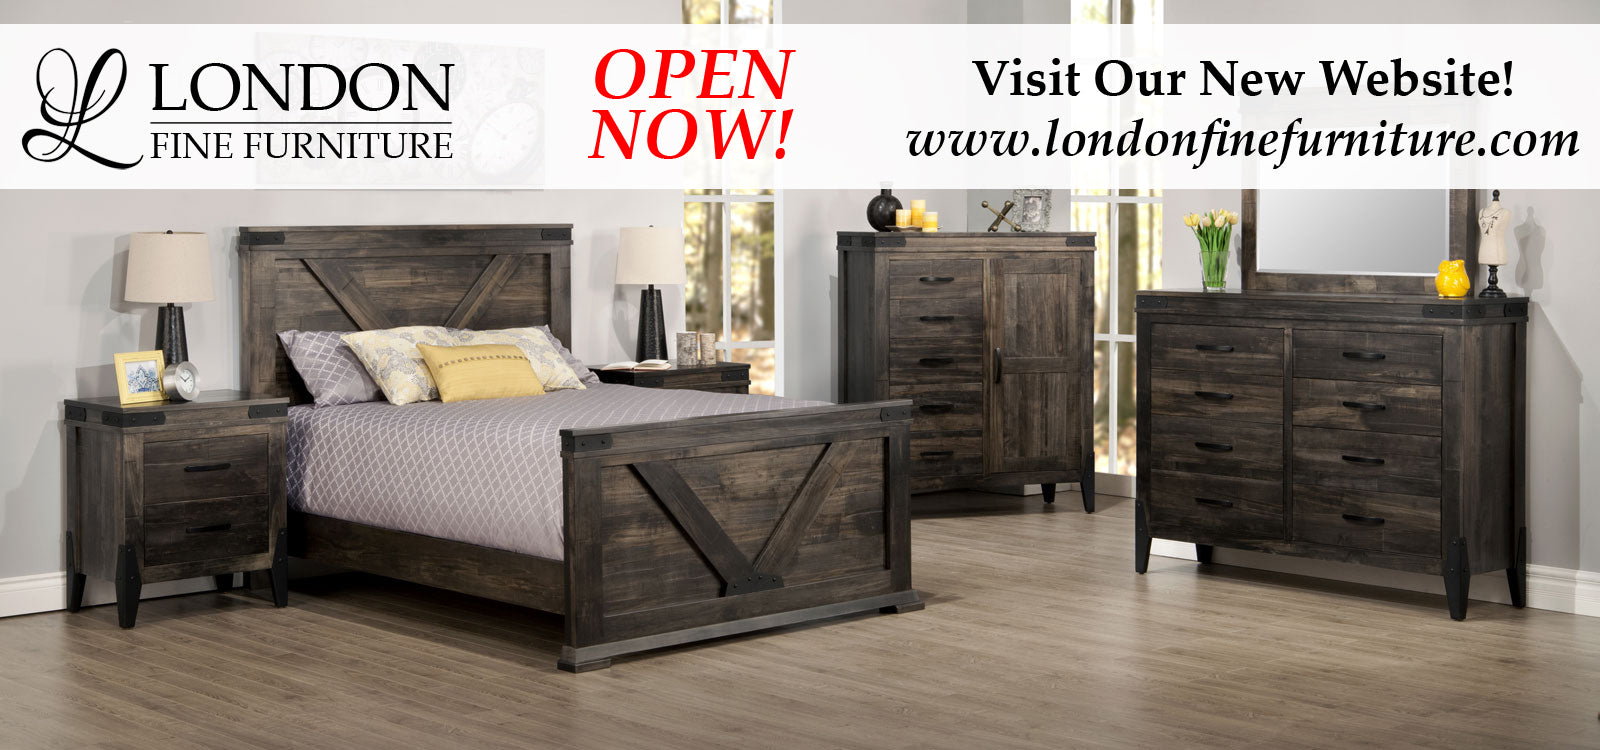 London Furniture Store